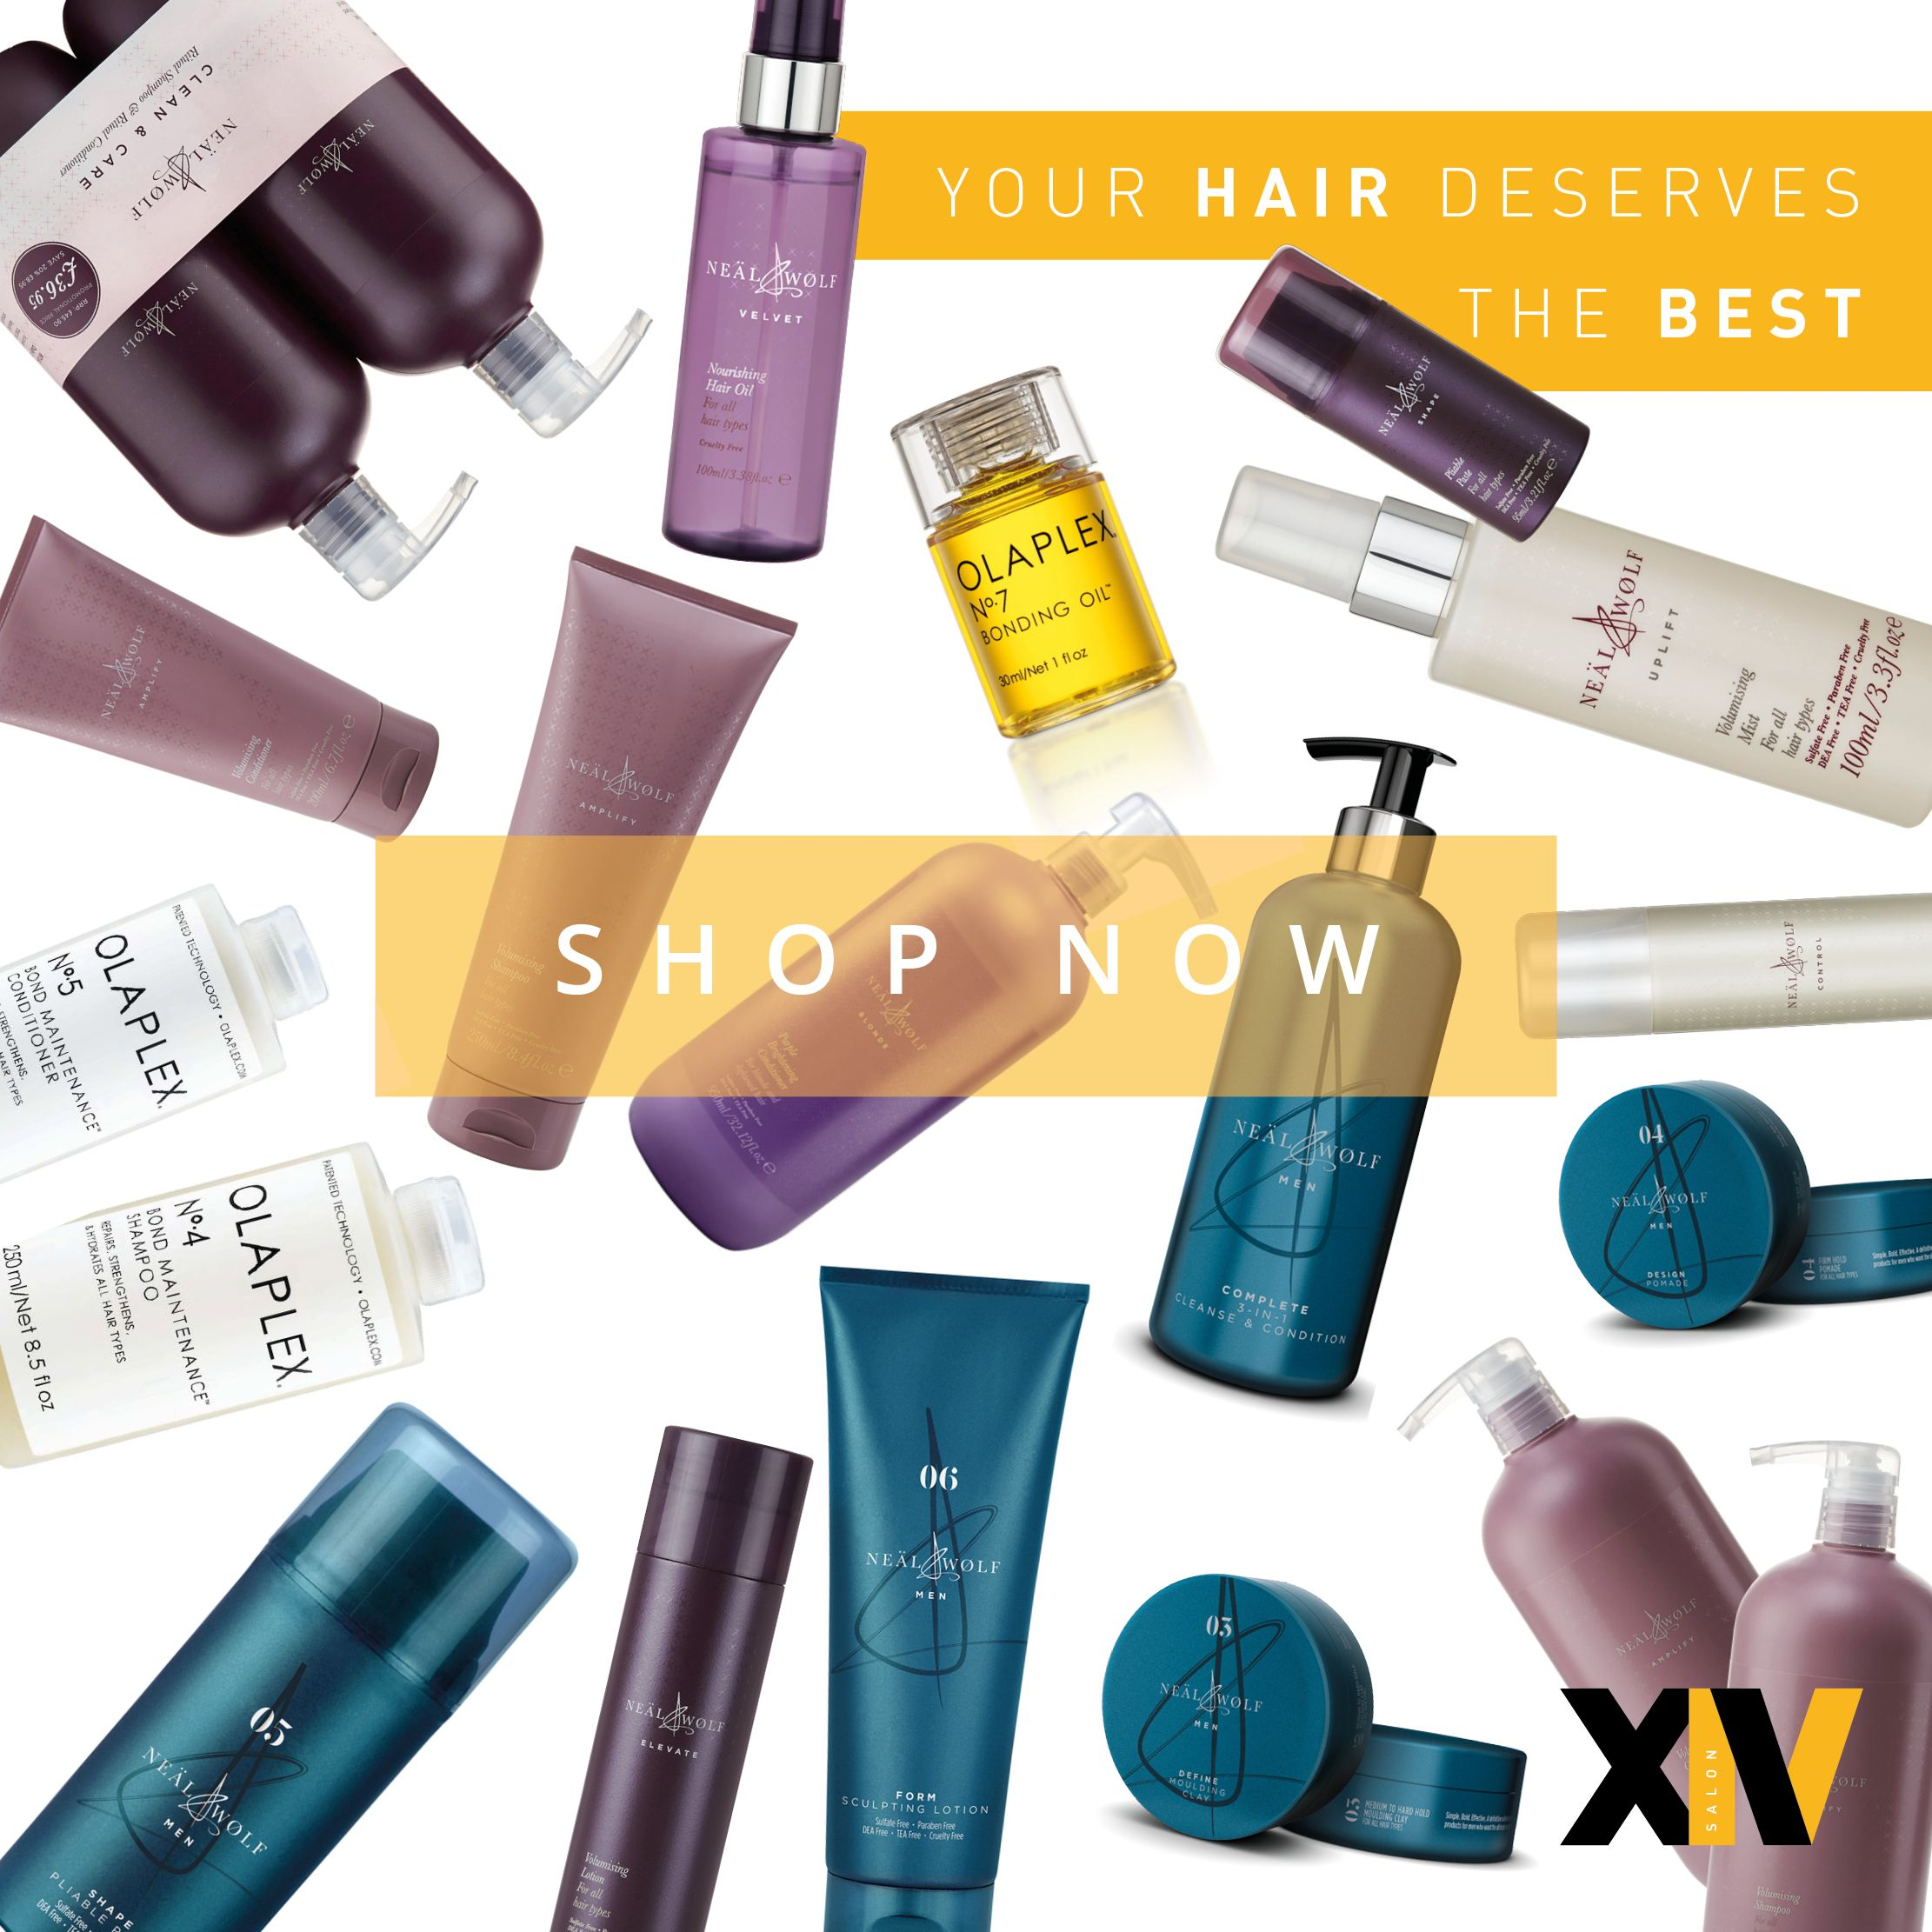 XIV Hair Salon Hairdresser Ripponden | Buy products online: Neal & Wolf; Olaplex; Joico; Cloud 9; Hot Tools